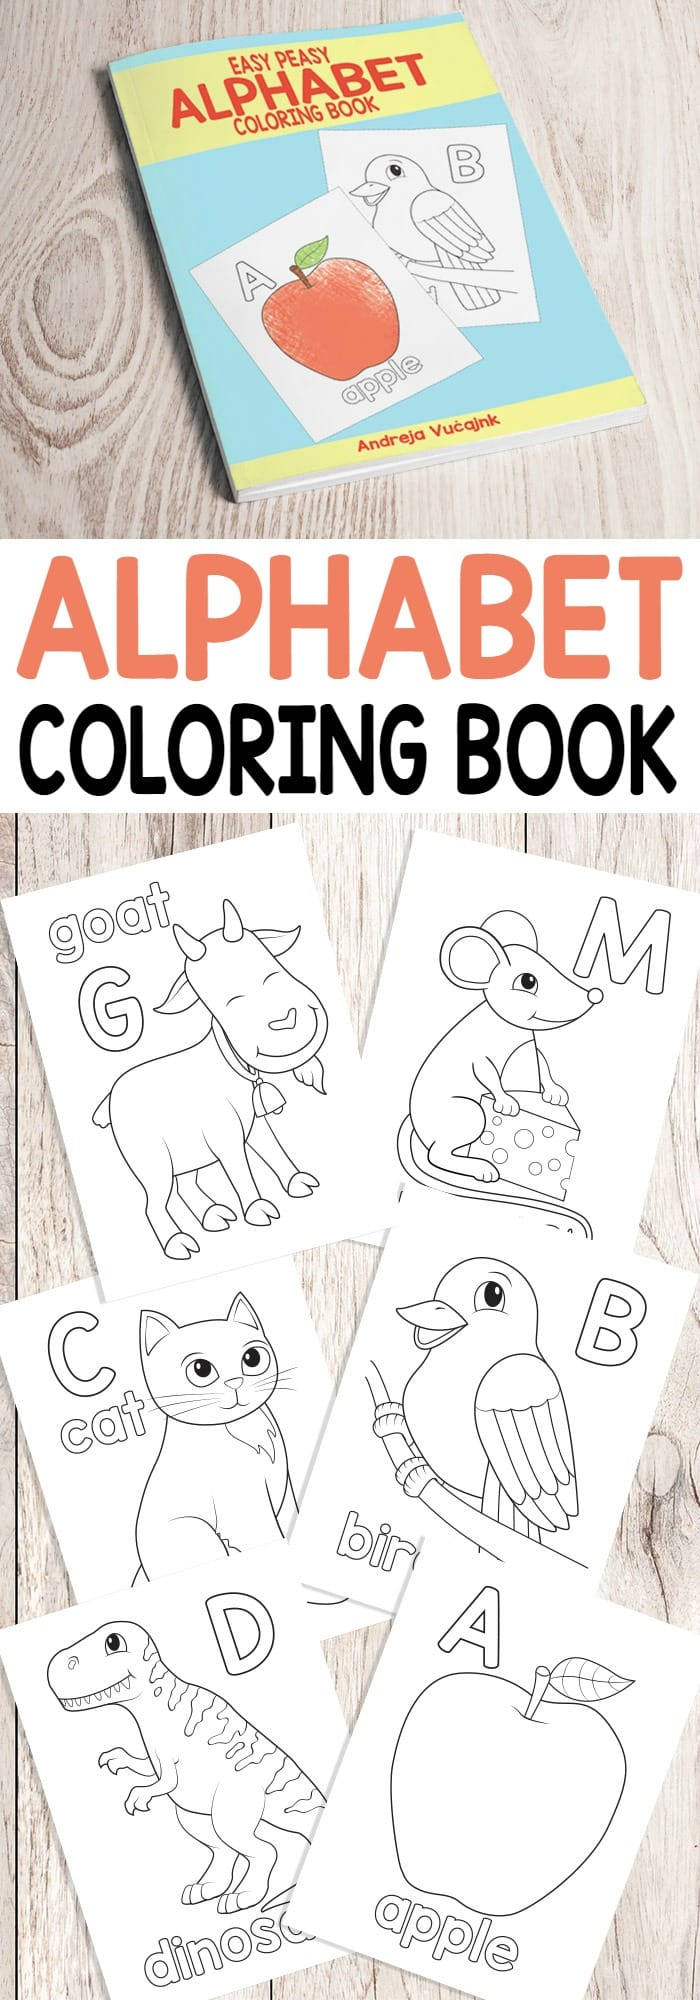 Easy Peasy And Fun: Easy Peasy Alphabet Coloring Book